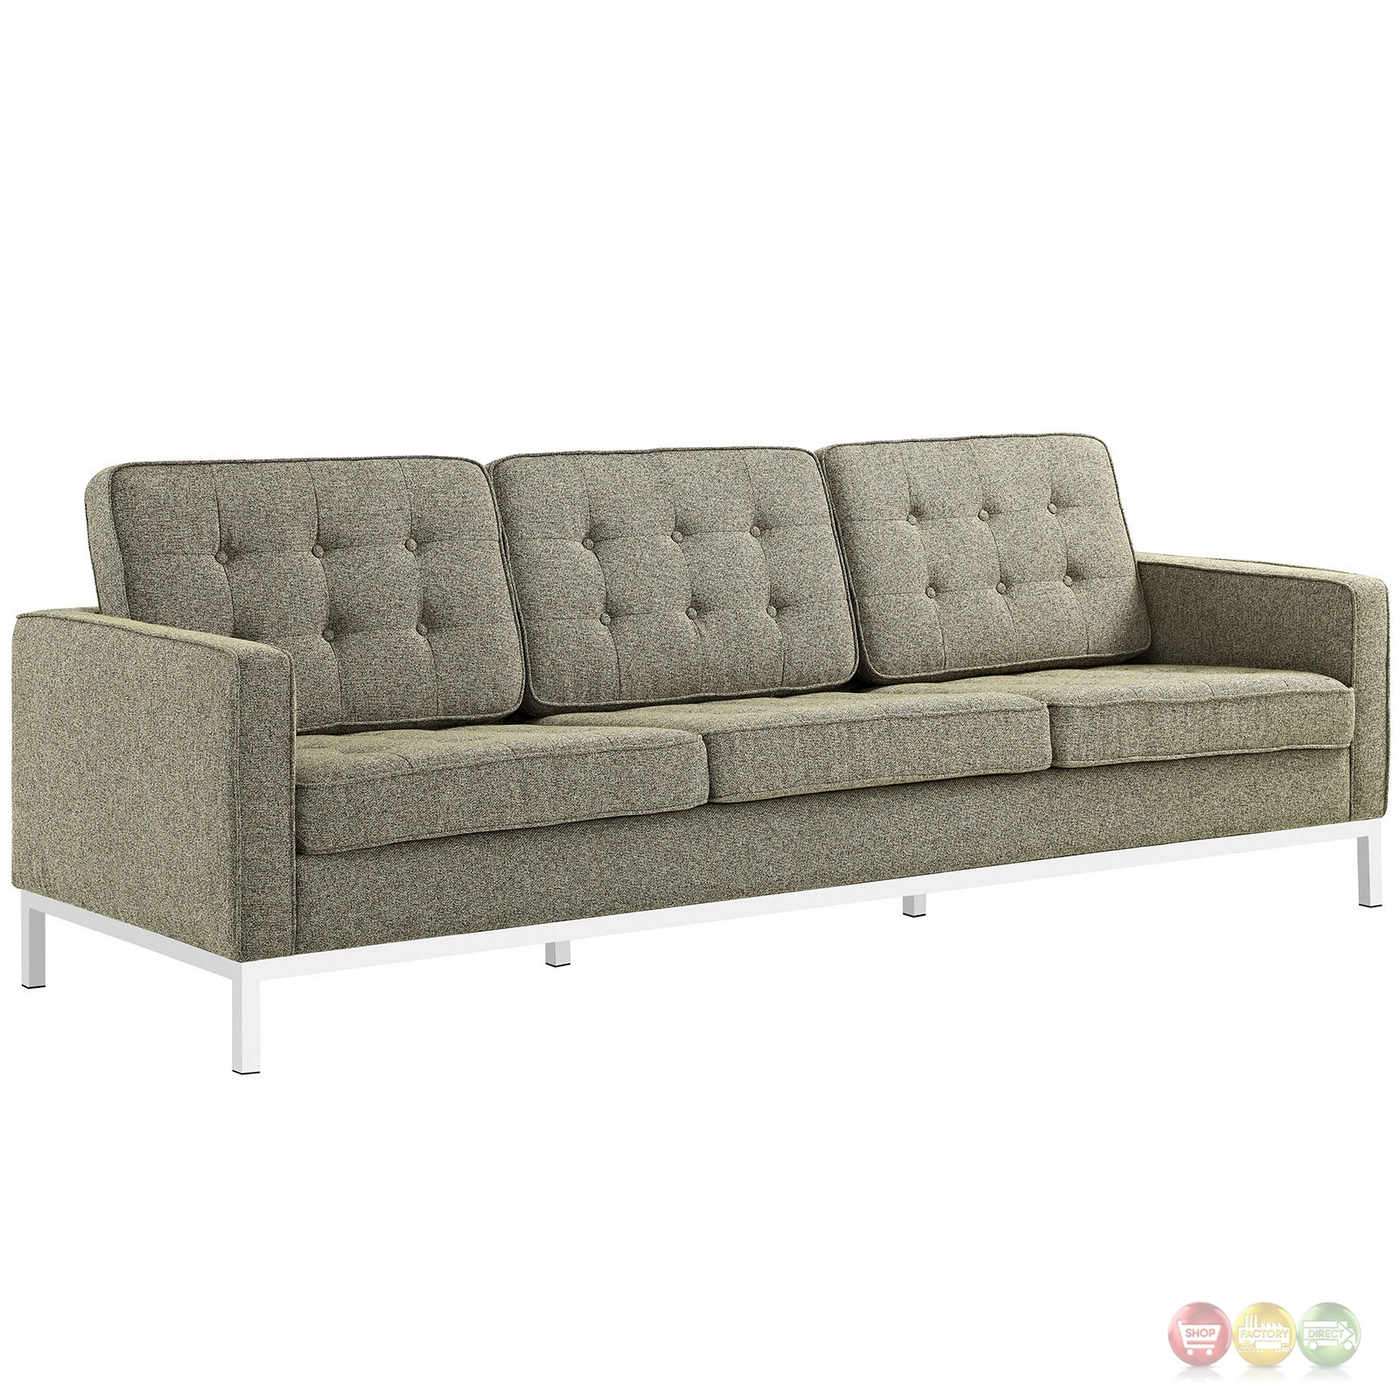 Loft Modern 2pc Upholstered Button tufted Sofa amp Loveseat  : loft modern 2pc upholstered button tufted sofa loveseat set oatmeal 9 from shopfactorydirect.com size 1400 x 1400 jpeg 573kB